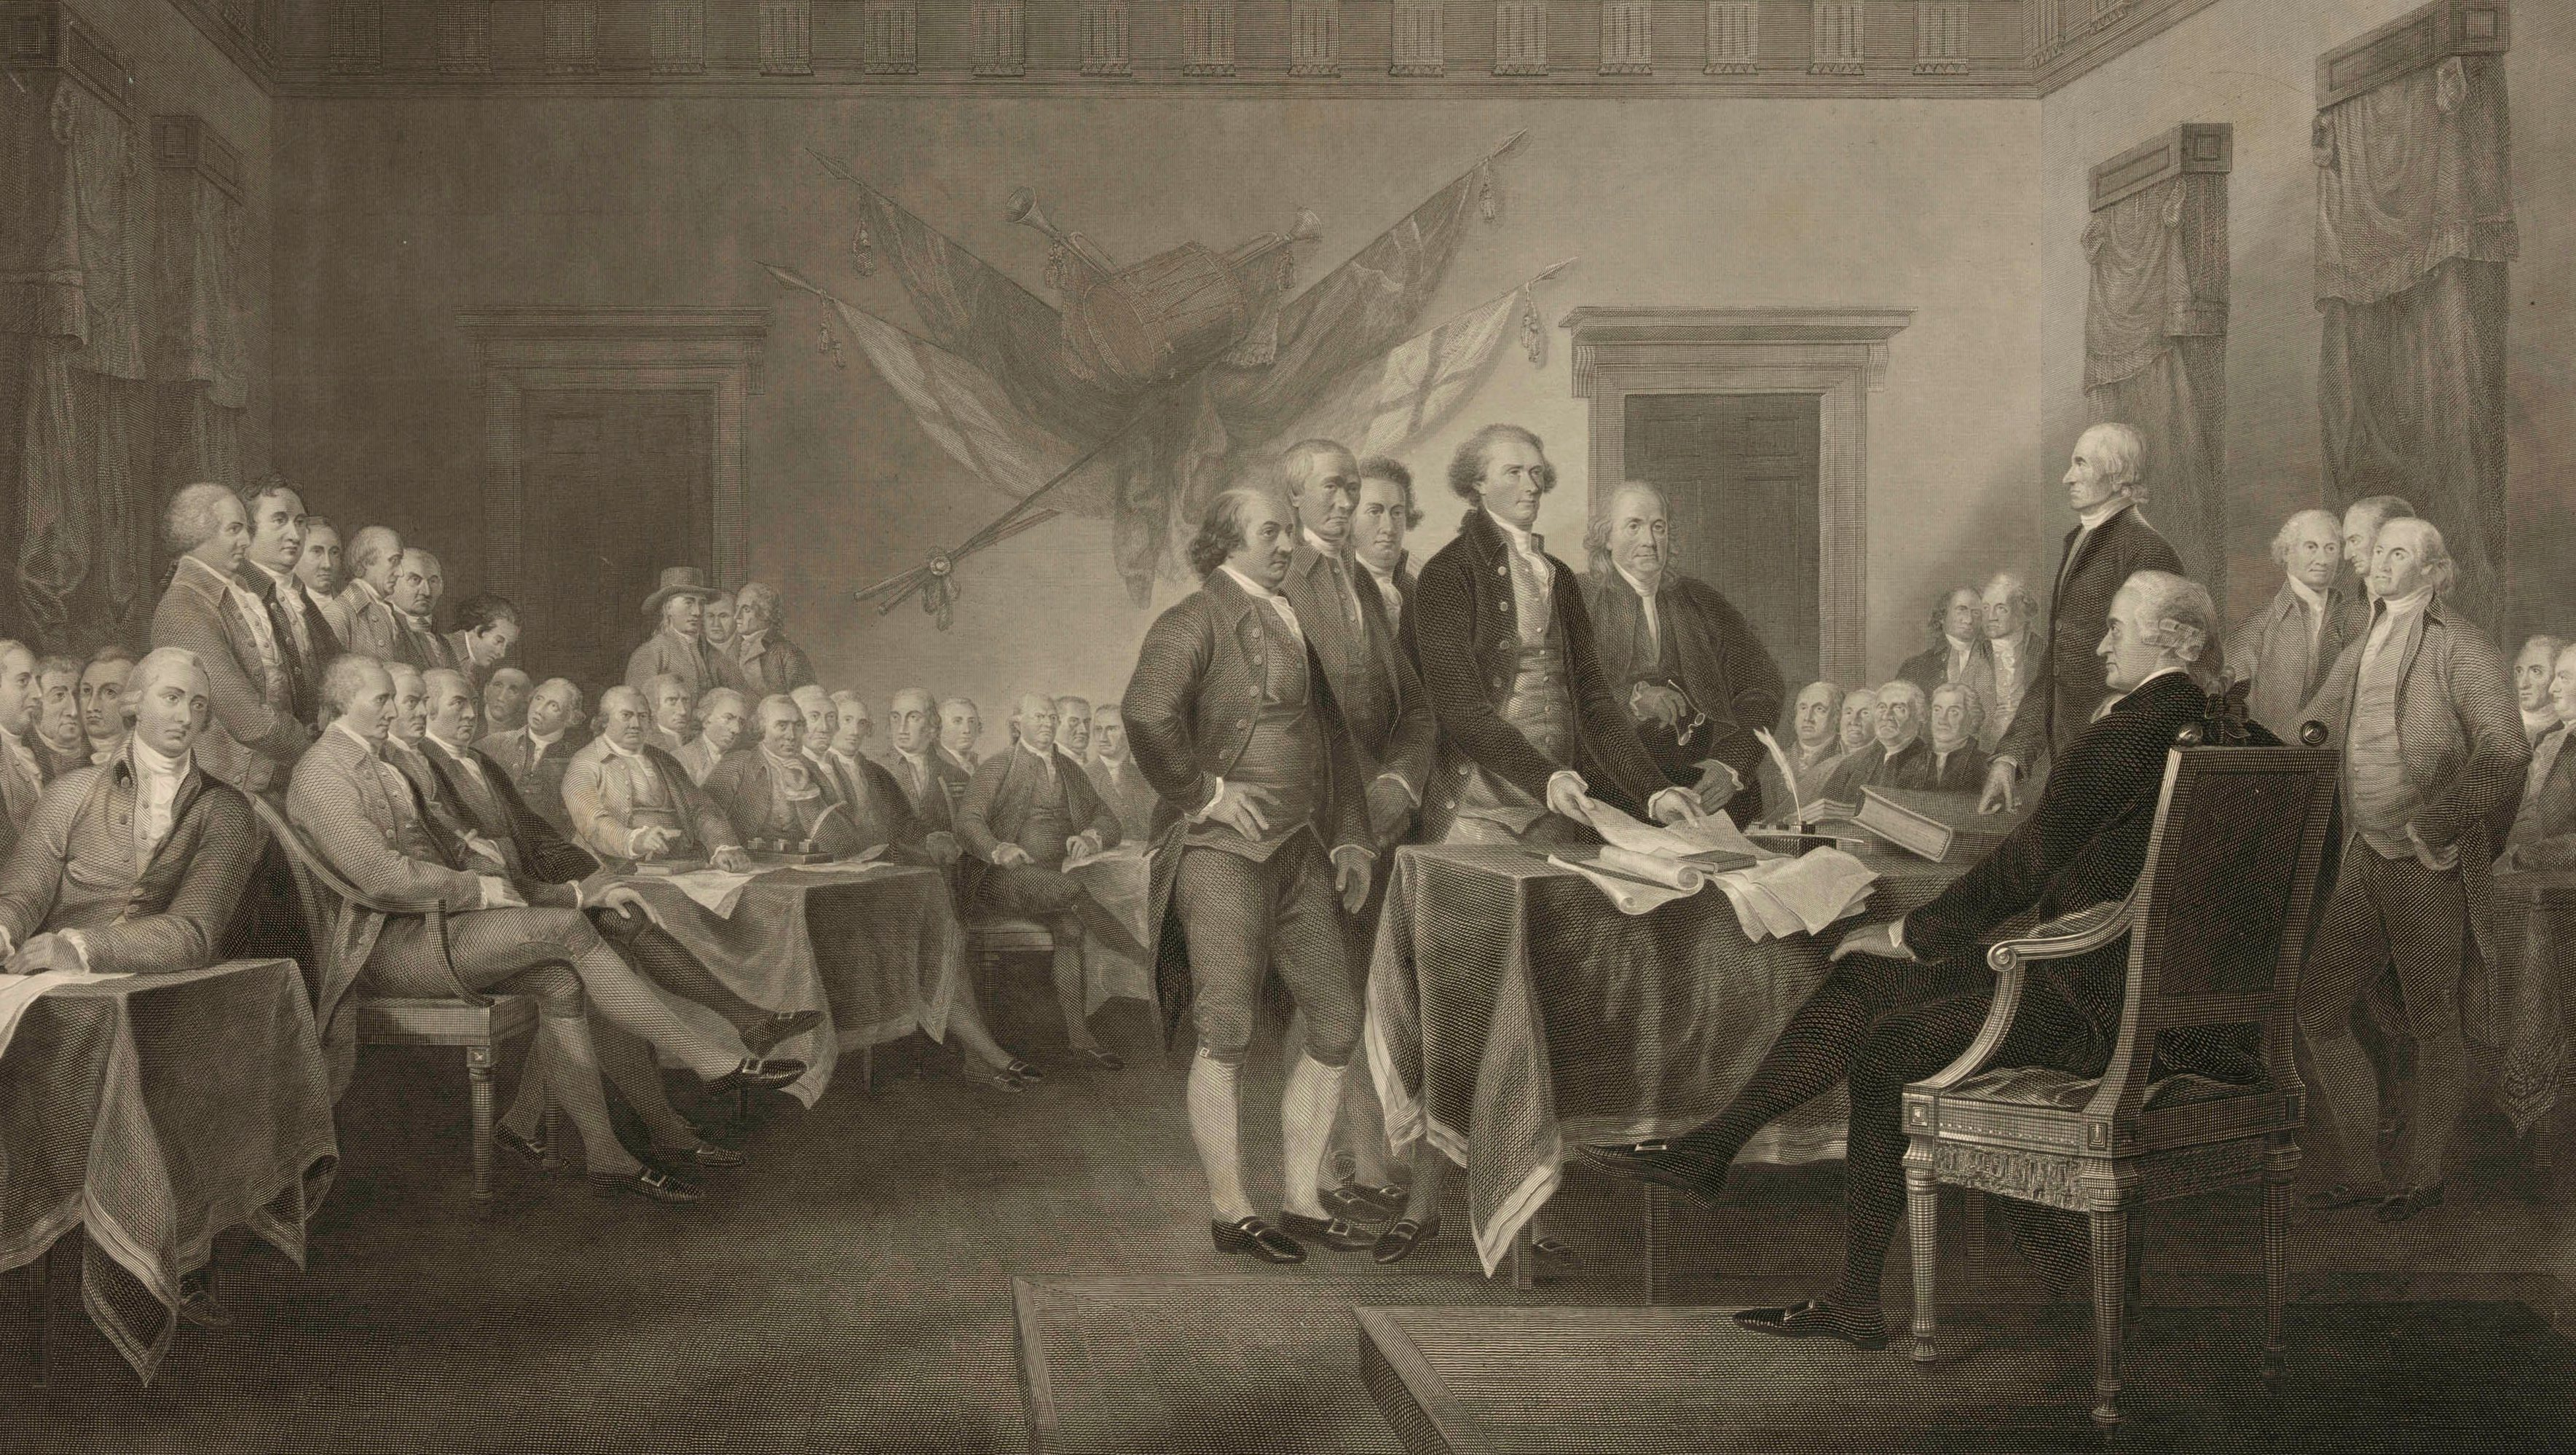 Facebook removed the US Declaration of Independence for violating ...